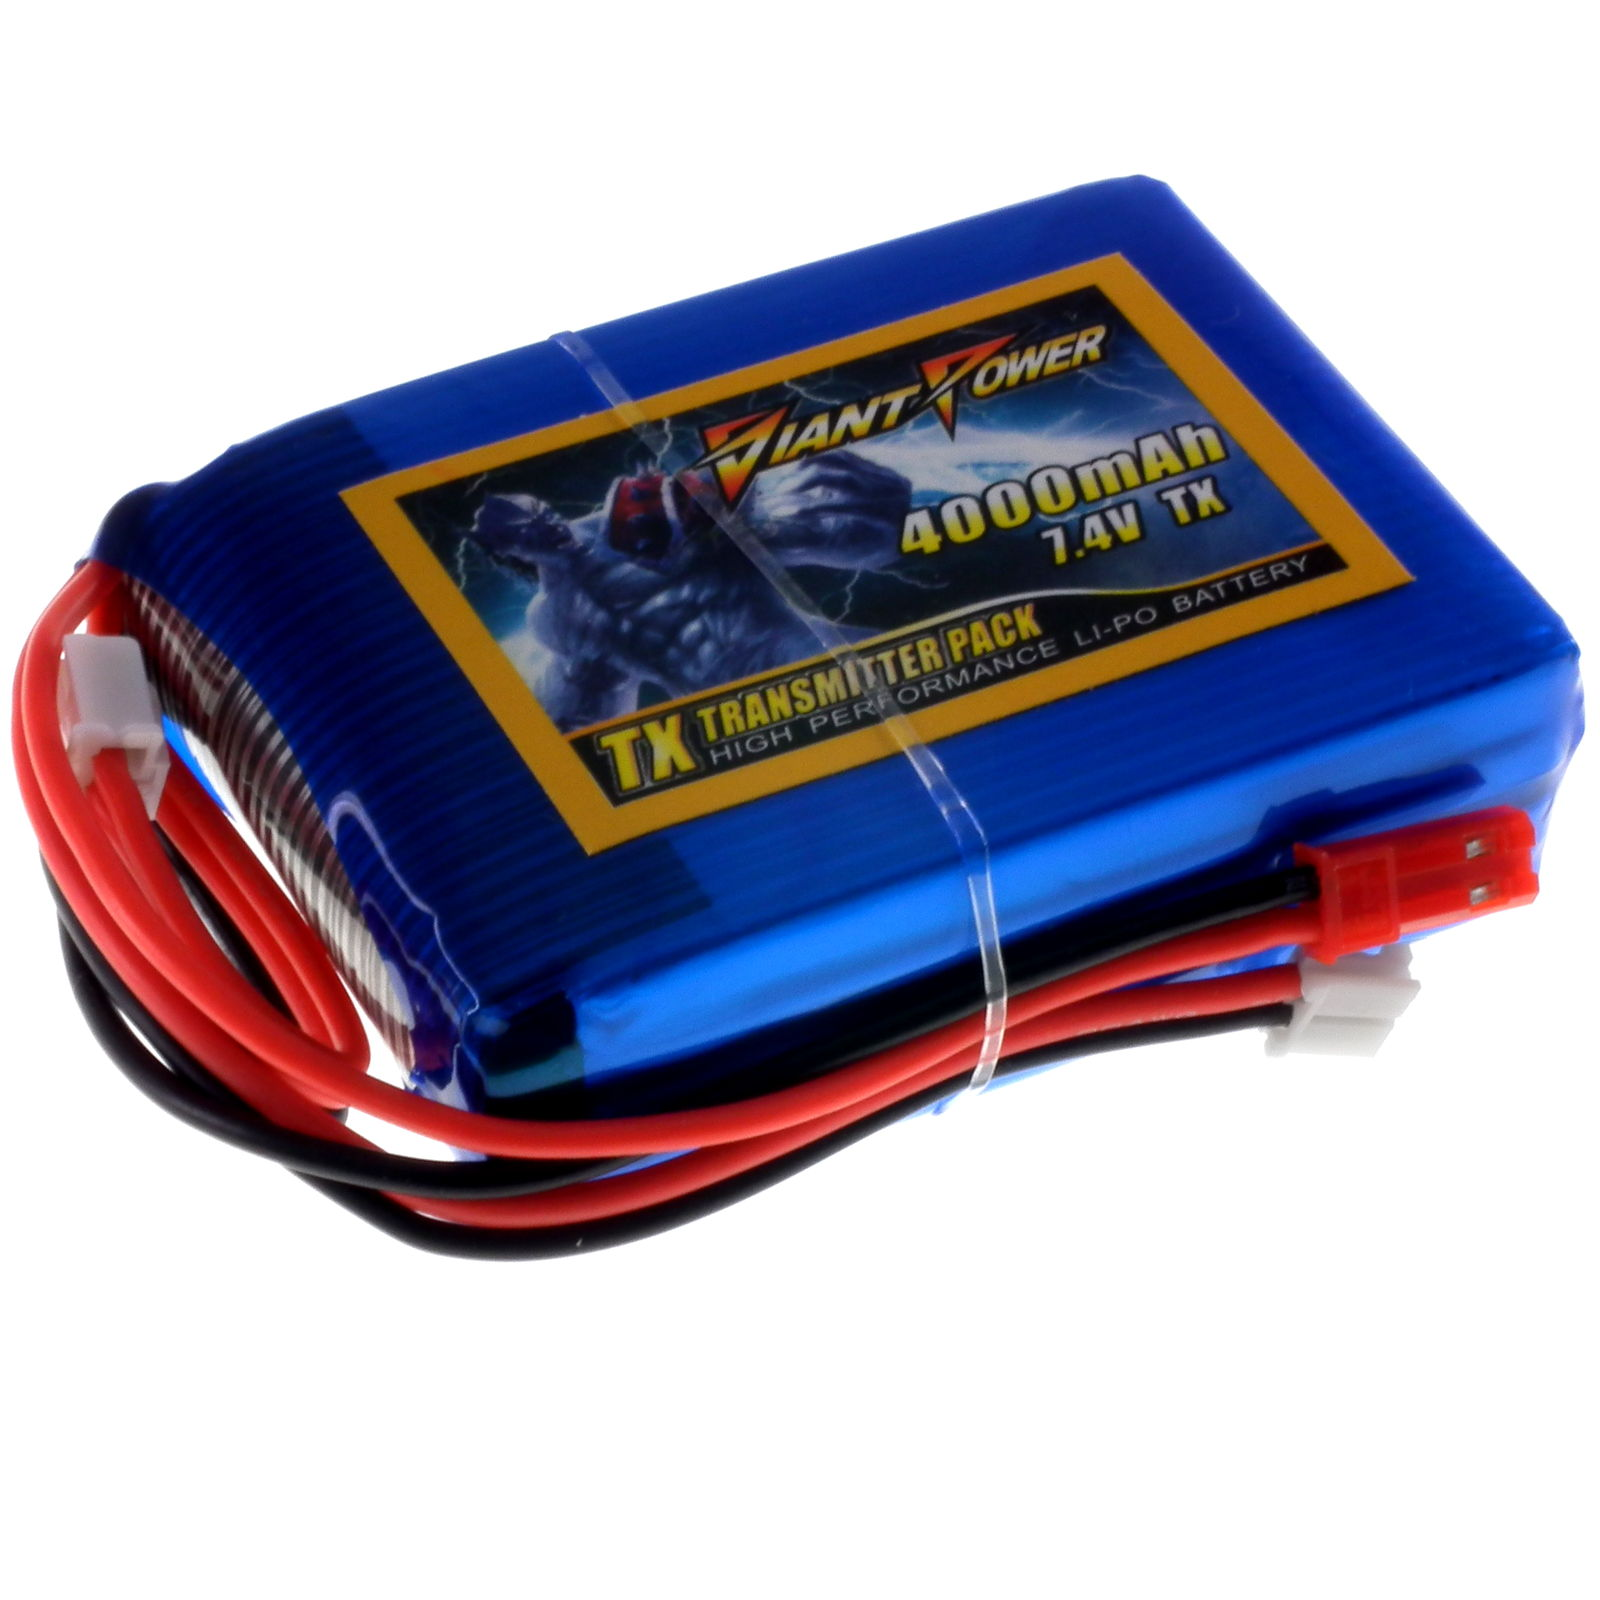 Lipo Life Transmitter And Receiver Battery Packs Component Shop Tips On Powering Rc Servos Receivers Radios Vehicles With Lipos 74v 4000mah 3c 6c Tx For Dx8 Multiple Connectors Giant Power